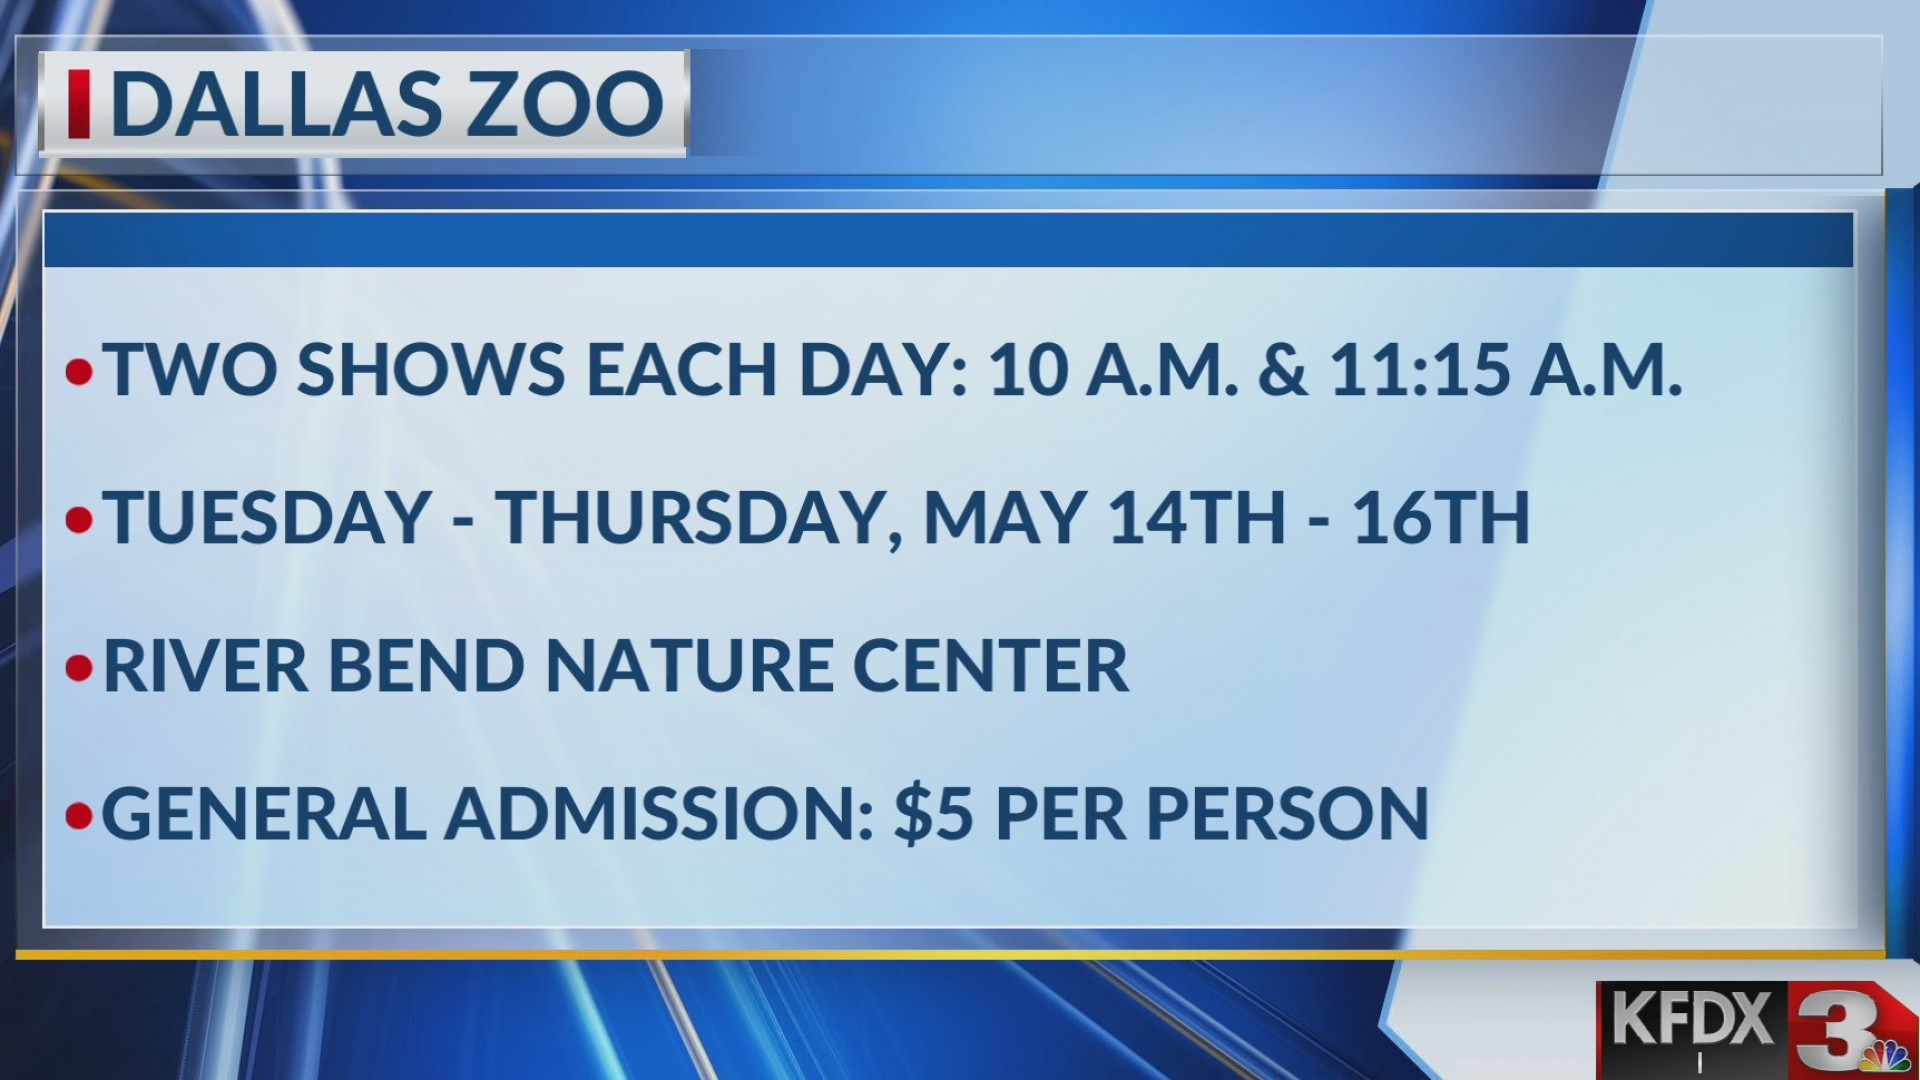 The_Dallas_Zoo_at_River_Bend_Nature_Cent_0_20190425115414